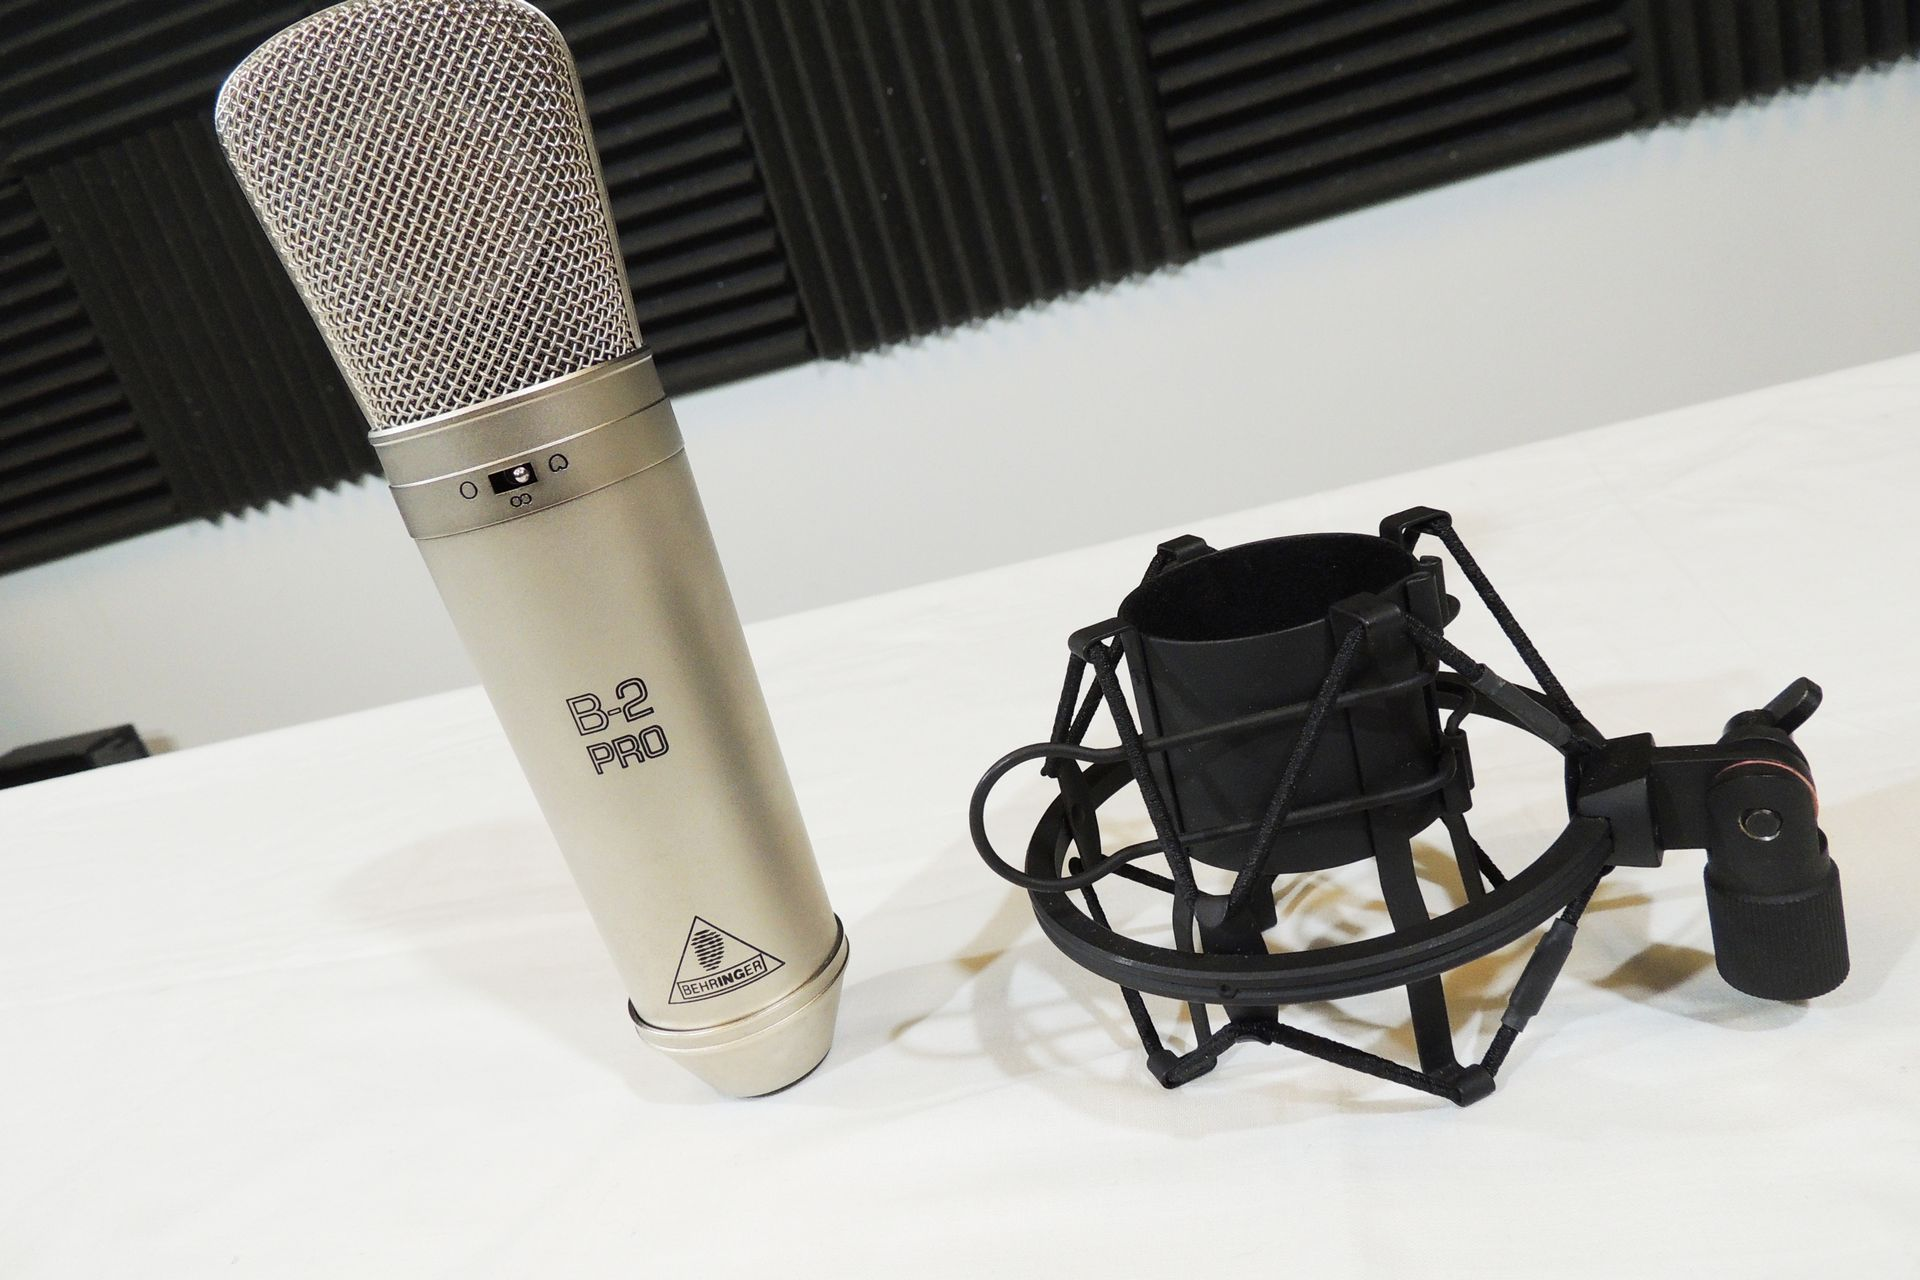 Behringer B-2 large diaphragm microphone for sale at Plasma Music